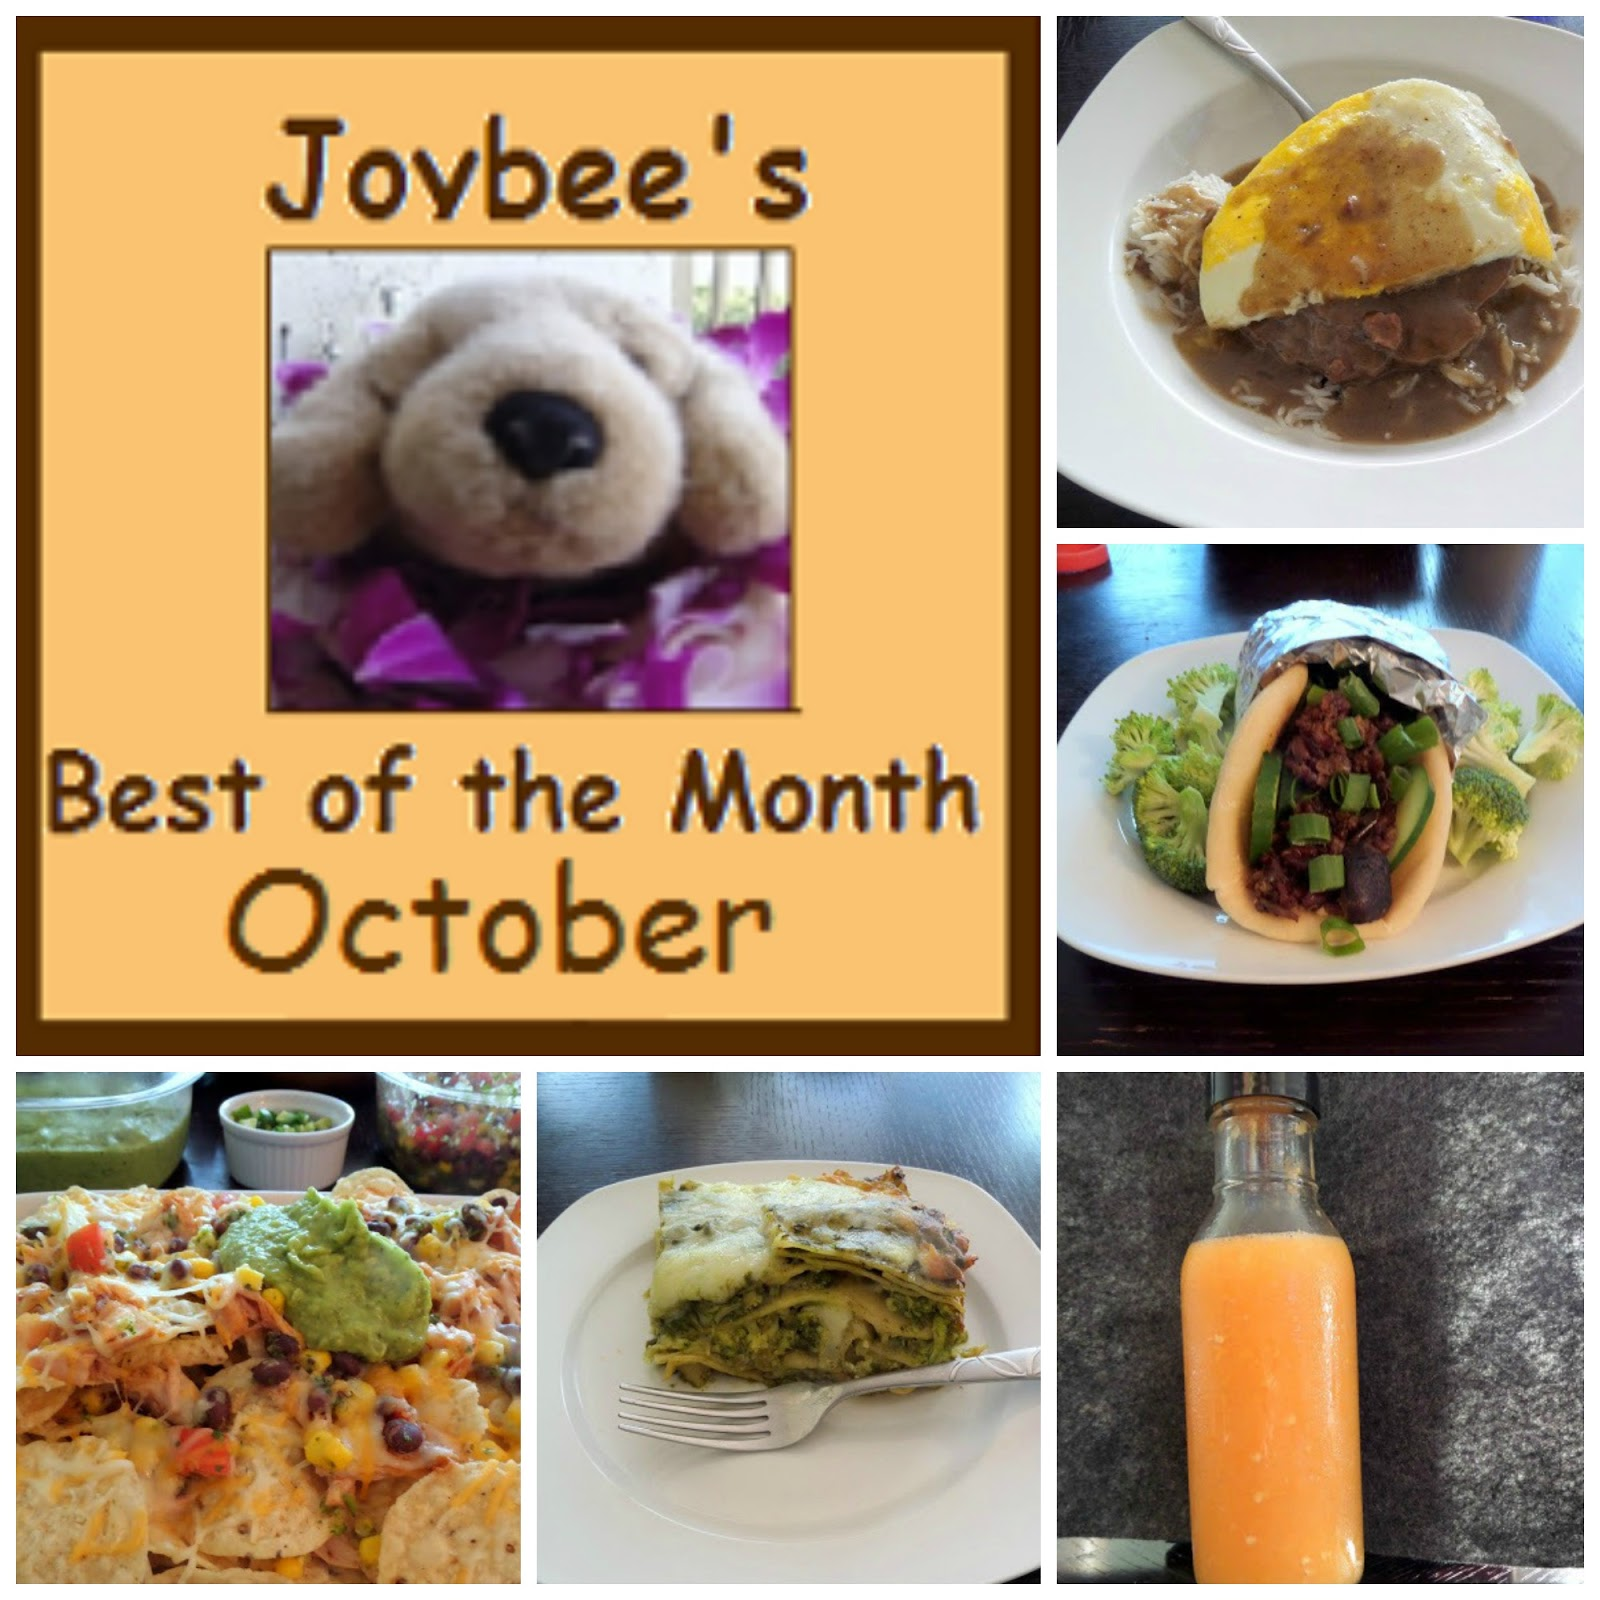 Best of the Month October 2014:  A recap of my most popular posts from the previous month, October 2014.